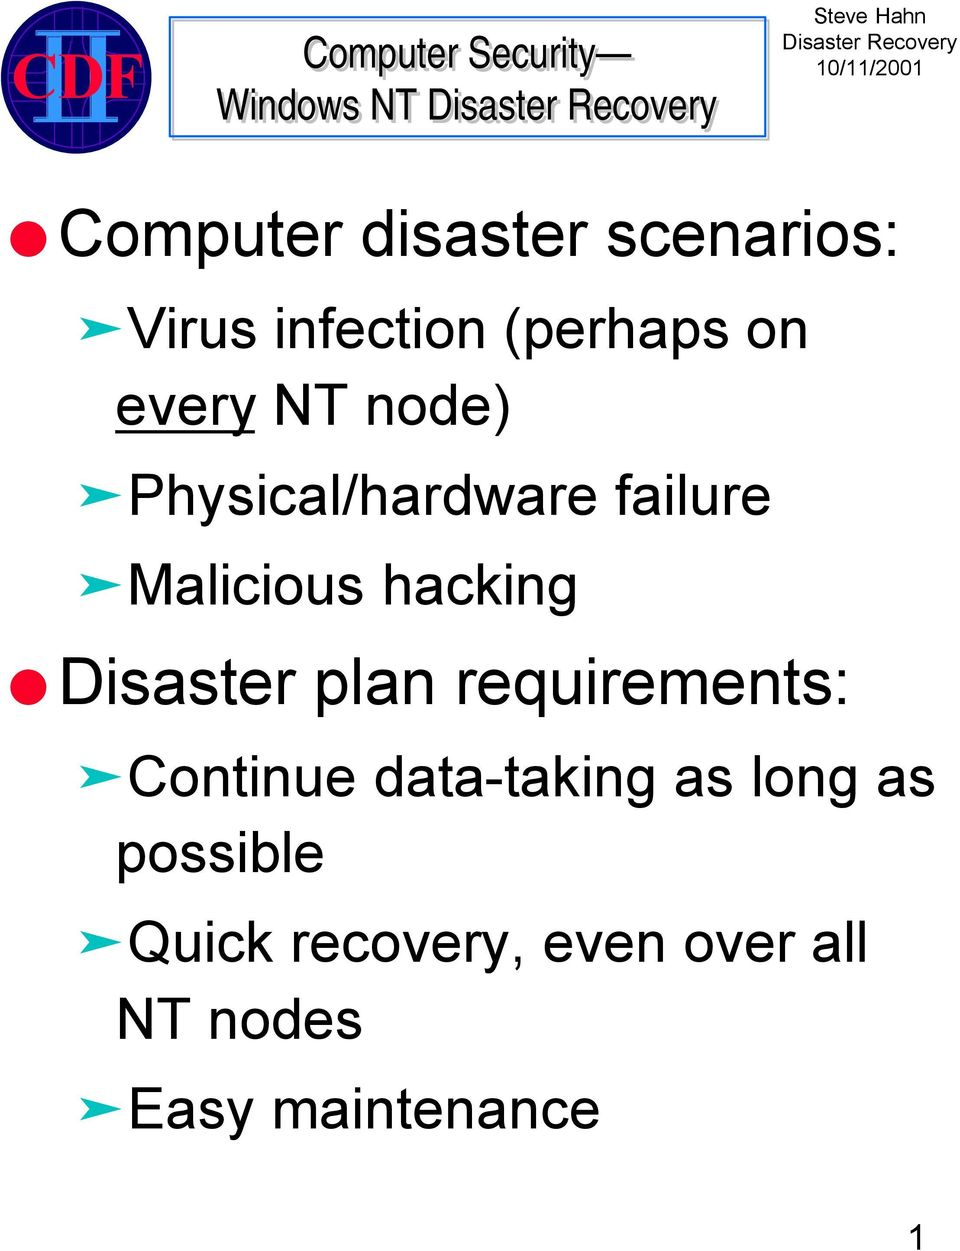 hacking Disaster plan requirements: Continue data-taking as